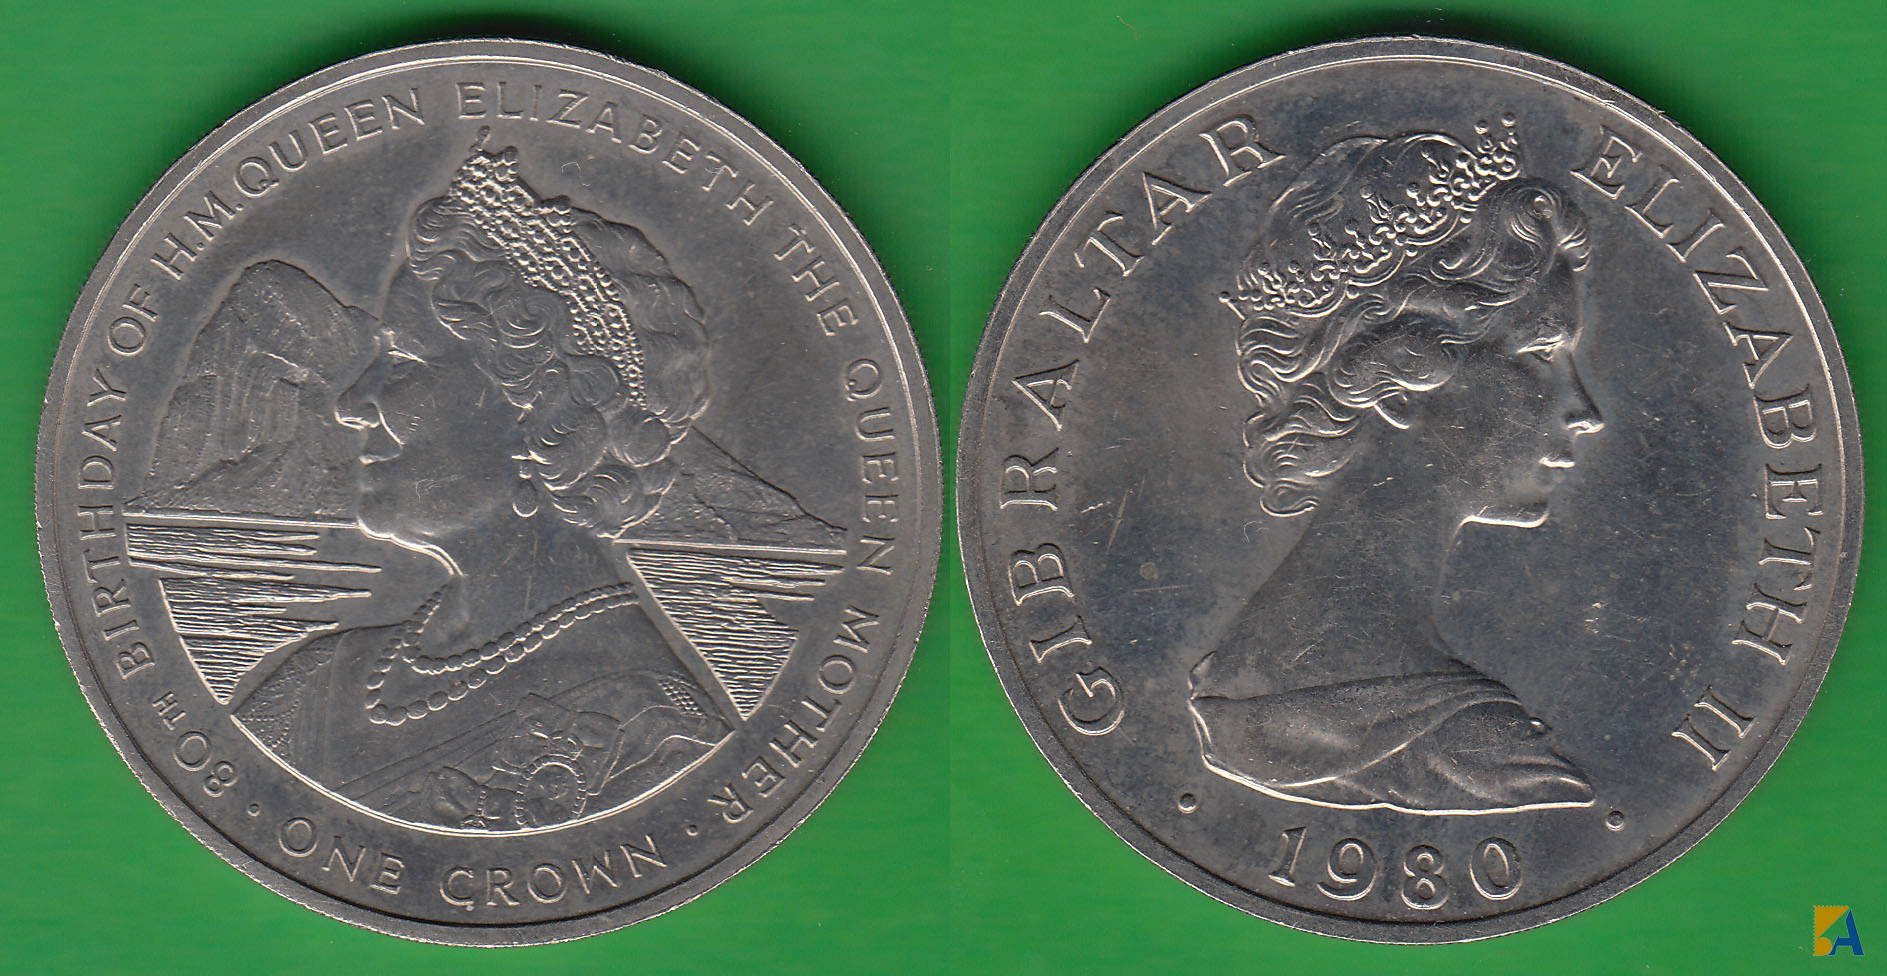 GIBRALTAR. 1 CORONA (CROWN) DE 1980.